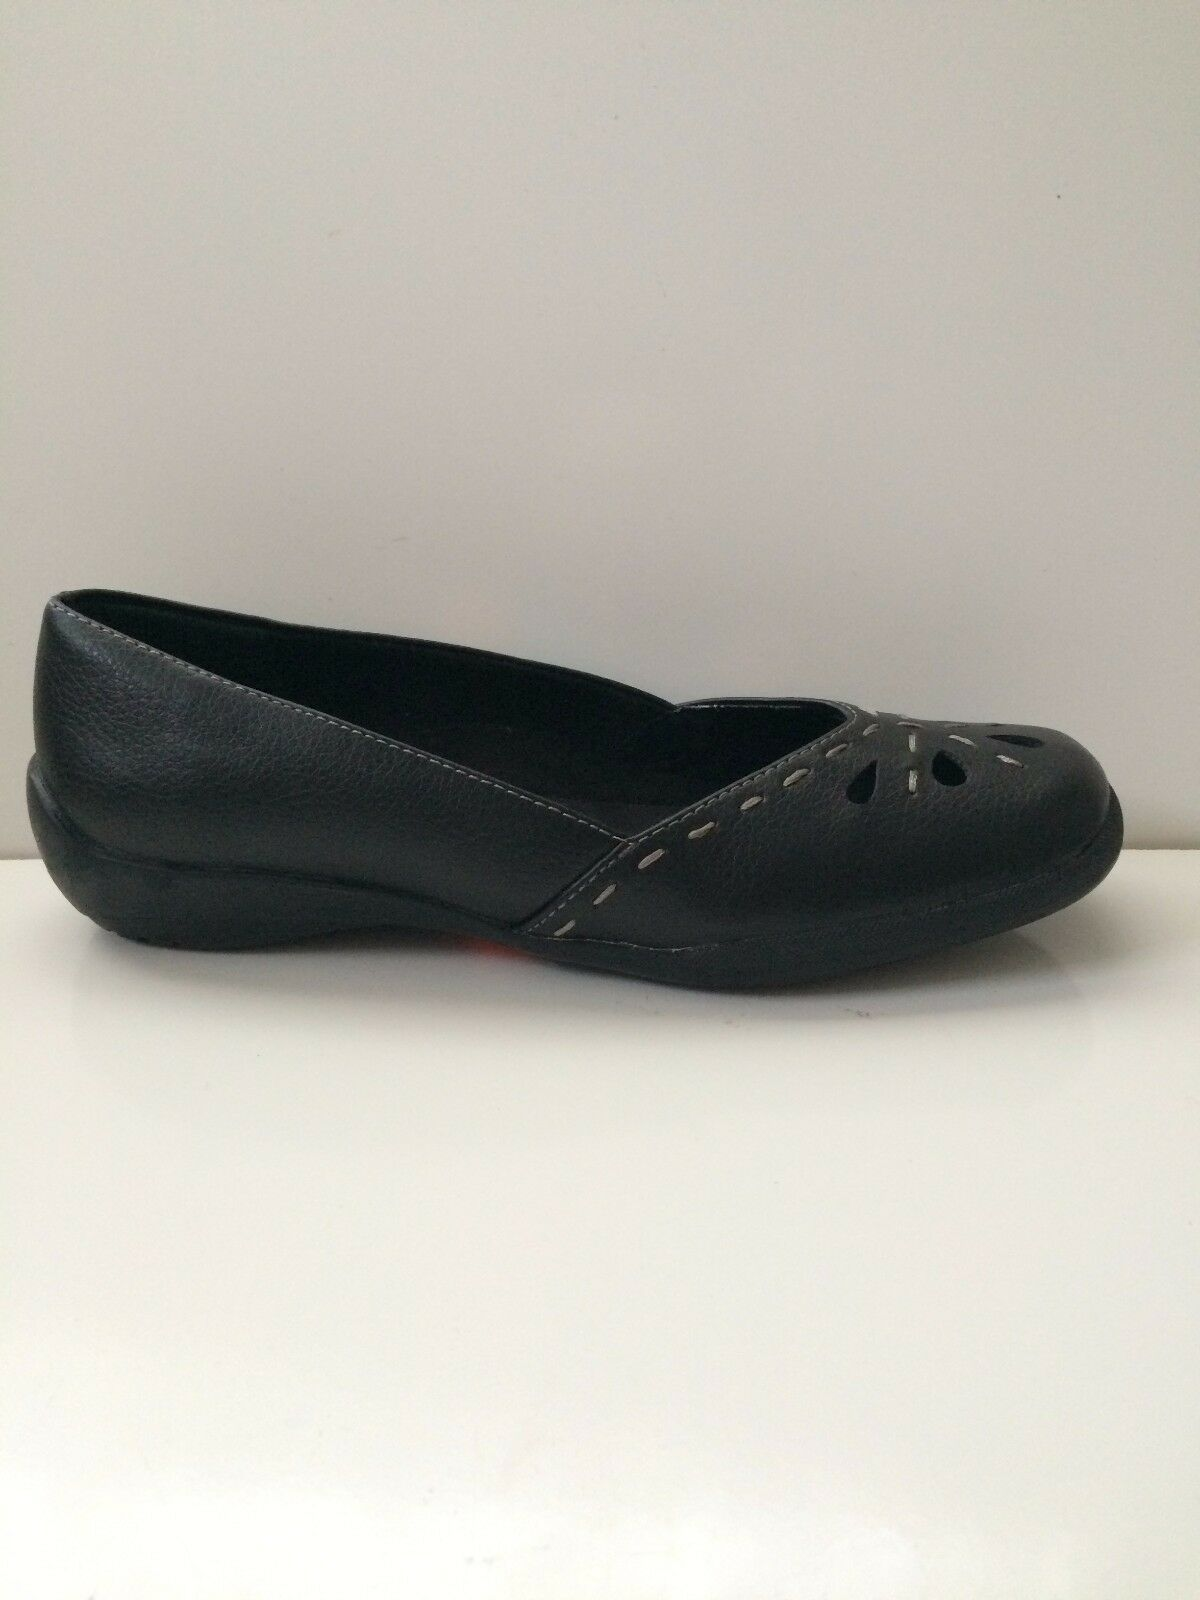 NEW Easy Street Women's Nadine Black Flat shoes Sz 6N